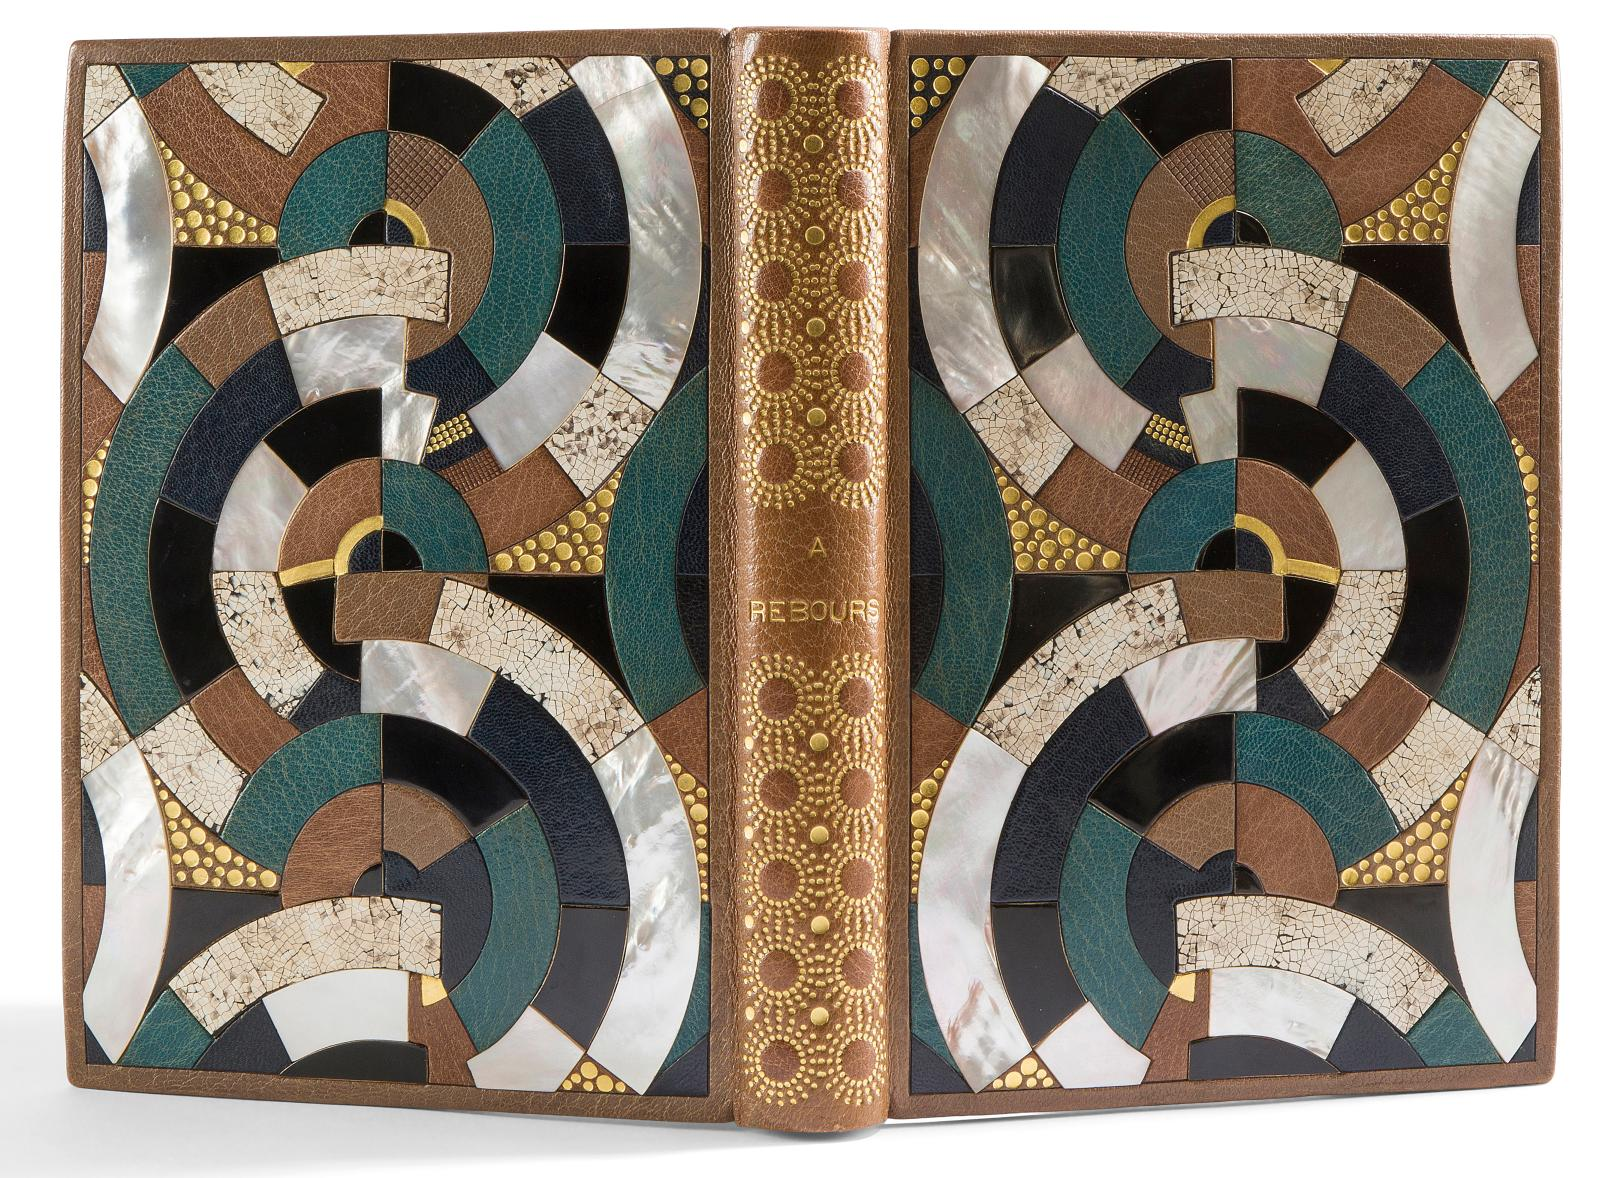 """À Rebours"" by Joris-Karl Huysmans, bound by Pierre Legrain (1889-1929) in Morocco leather, mother-of-pearl, lacquer and eggshell; illustrated with 22"